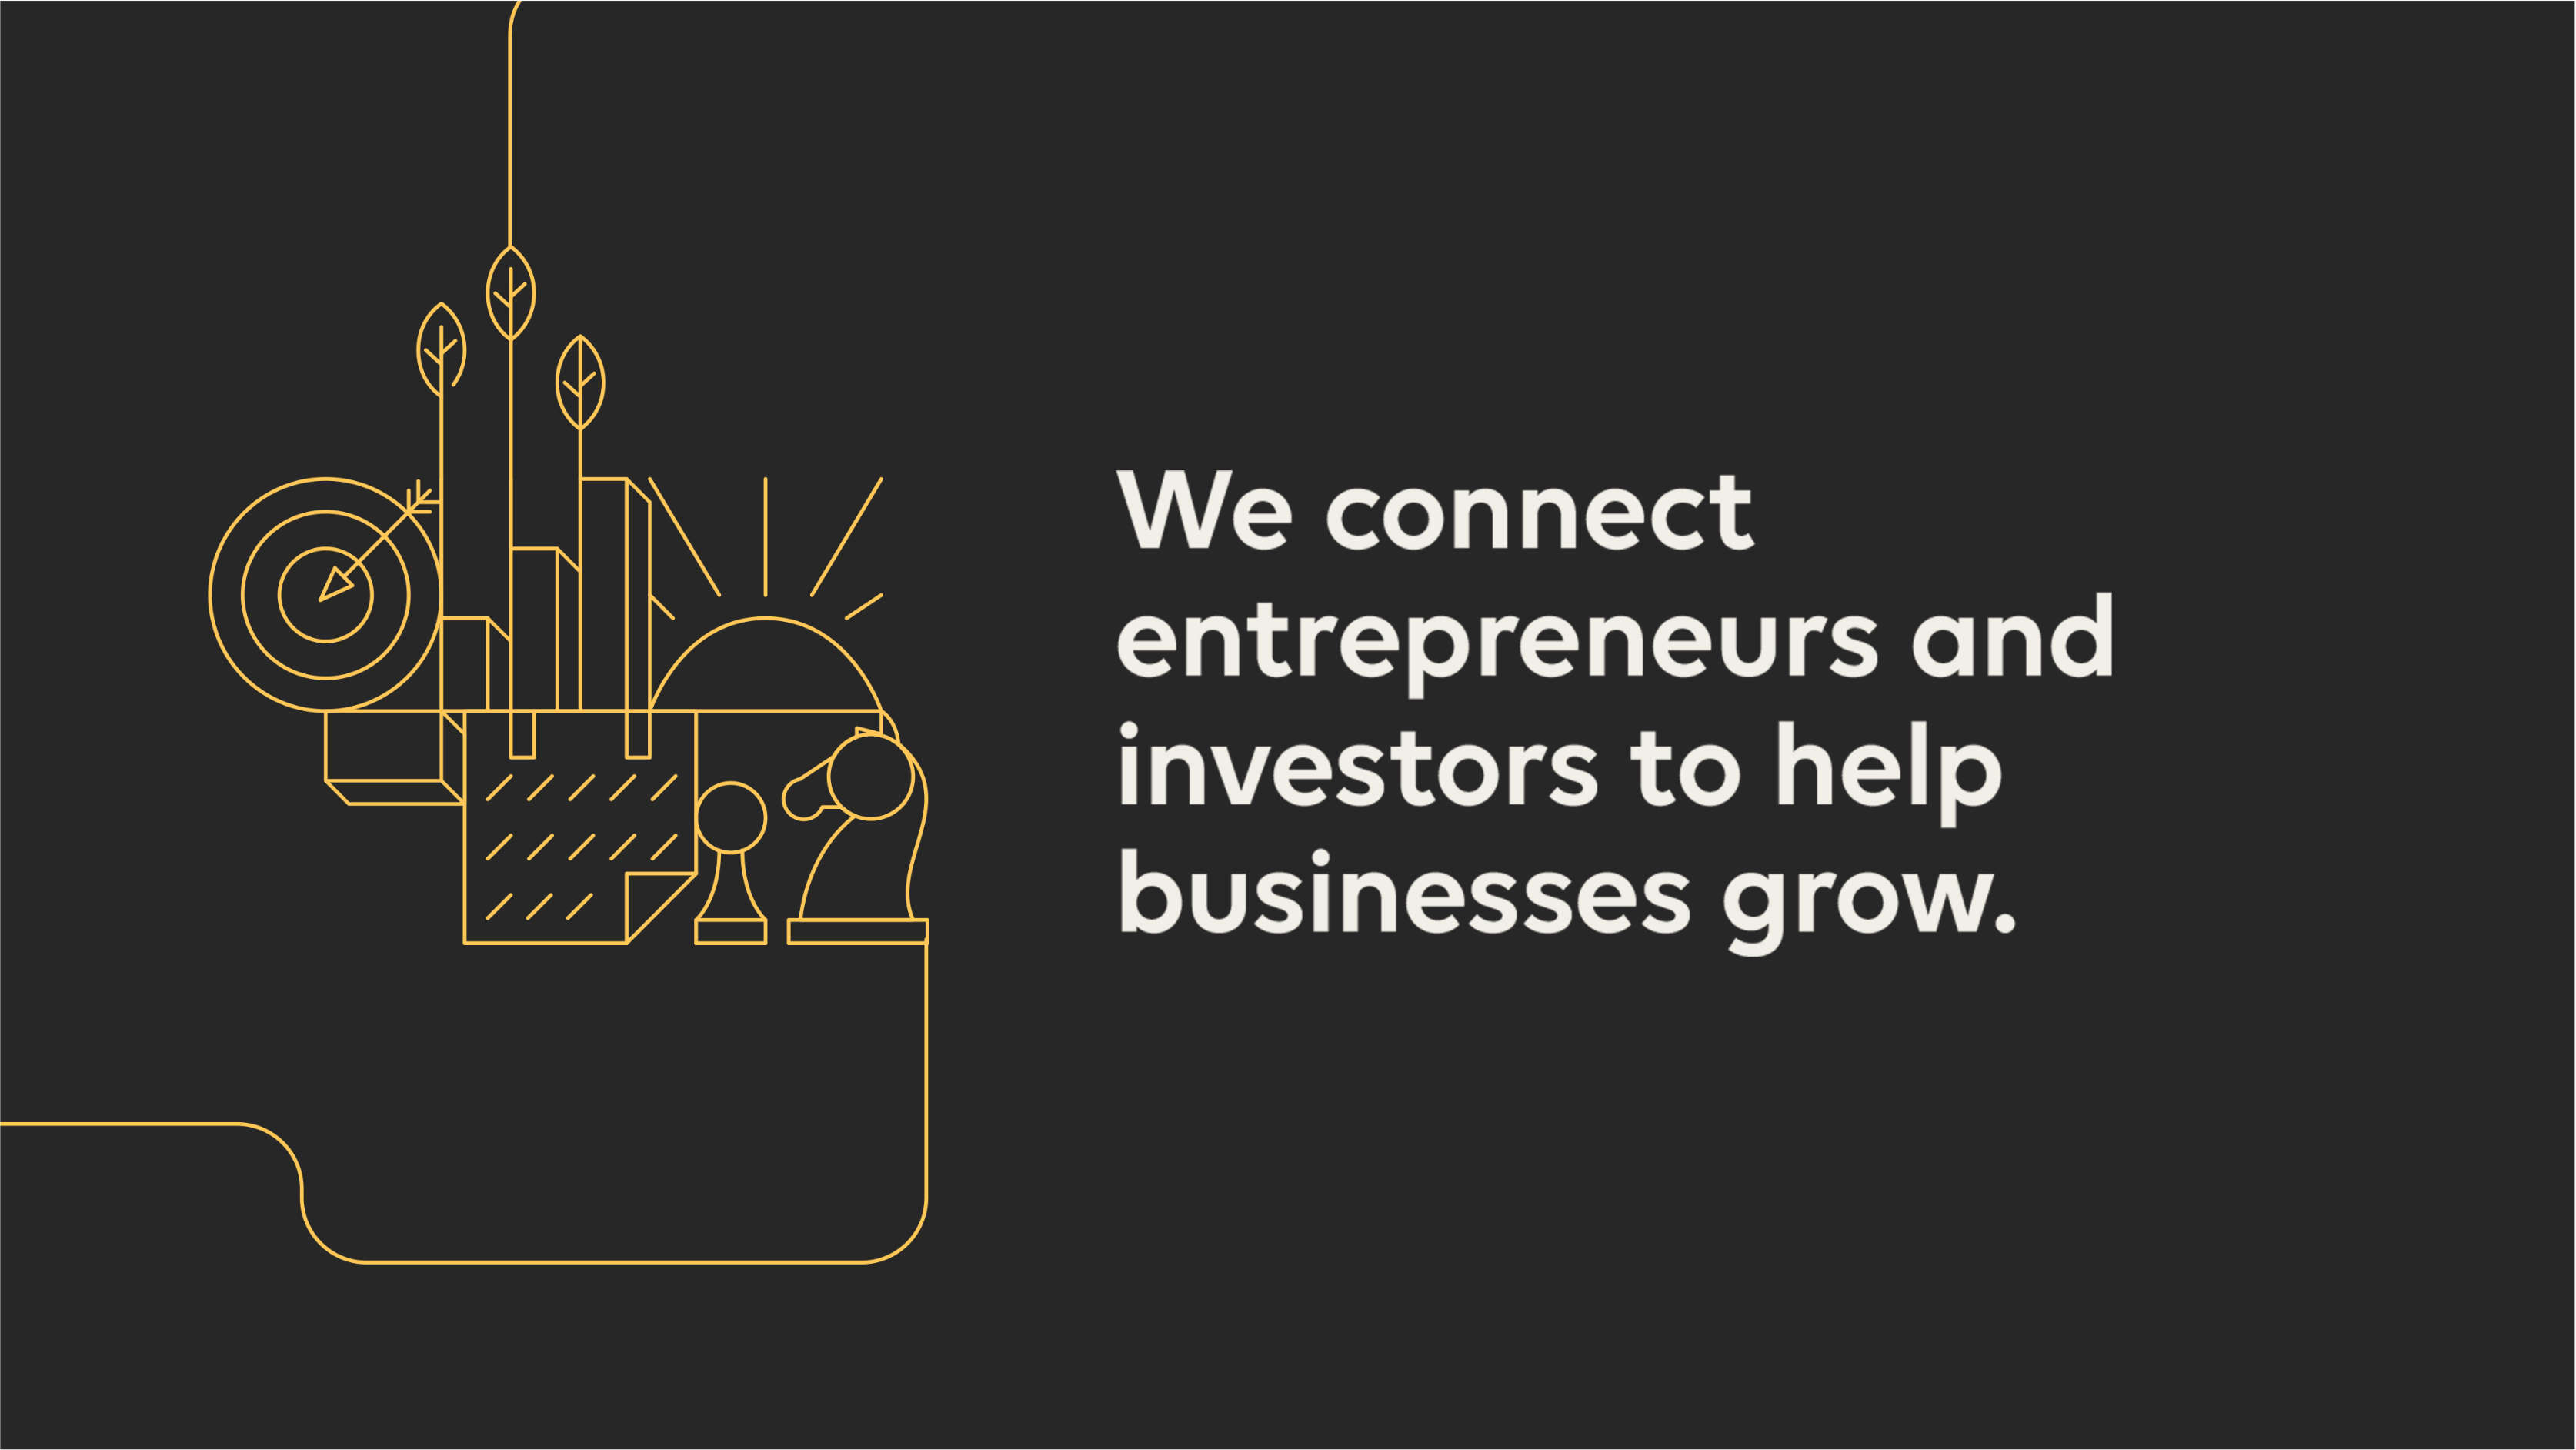 We connect entrepreneurs and investors to help businesses grow.